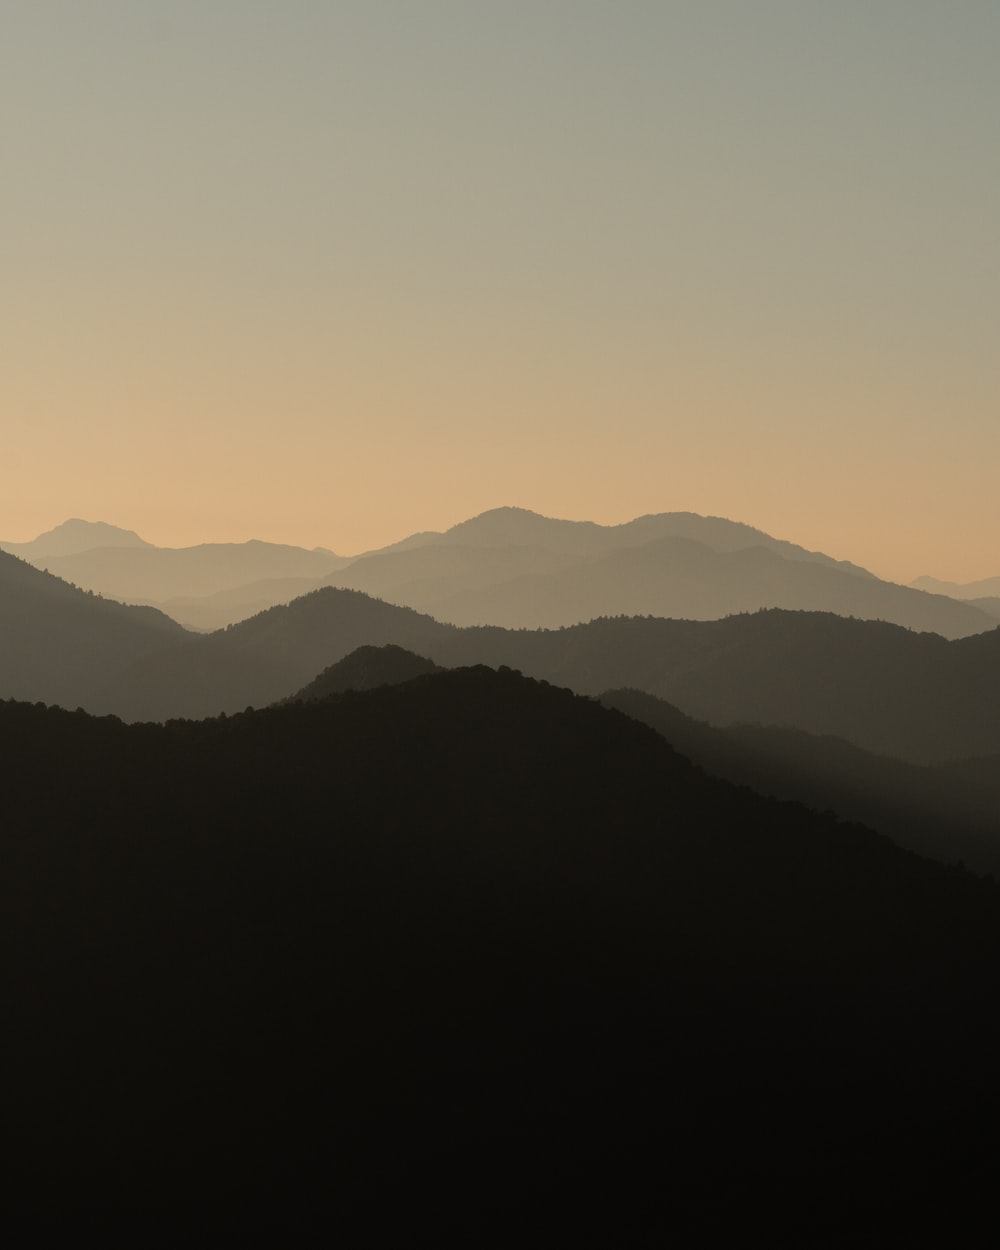 silhouette of mountains during daytime